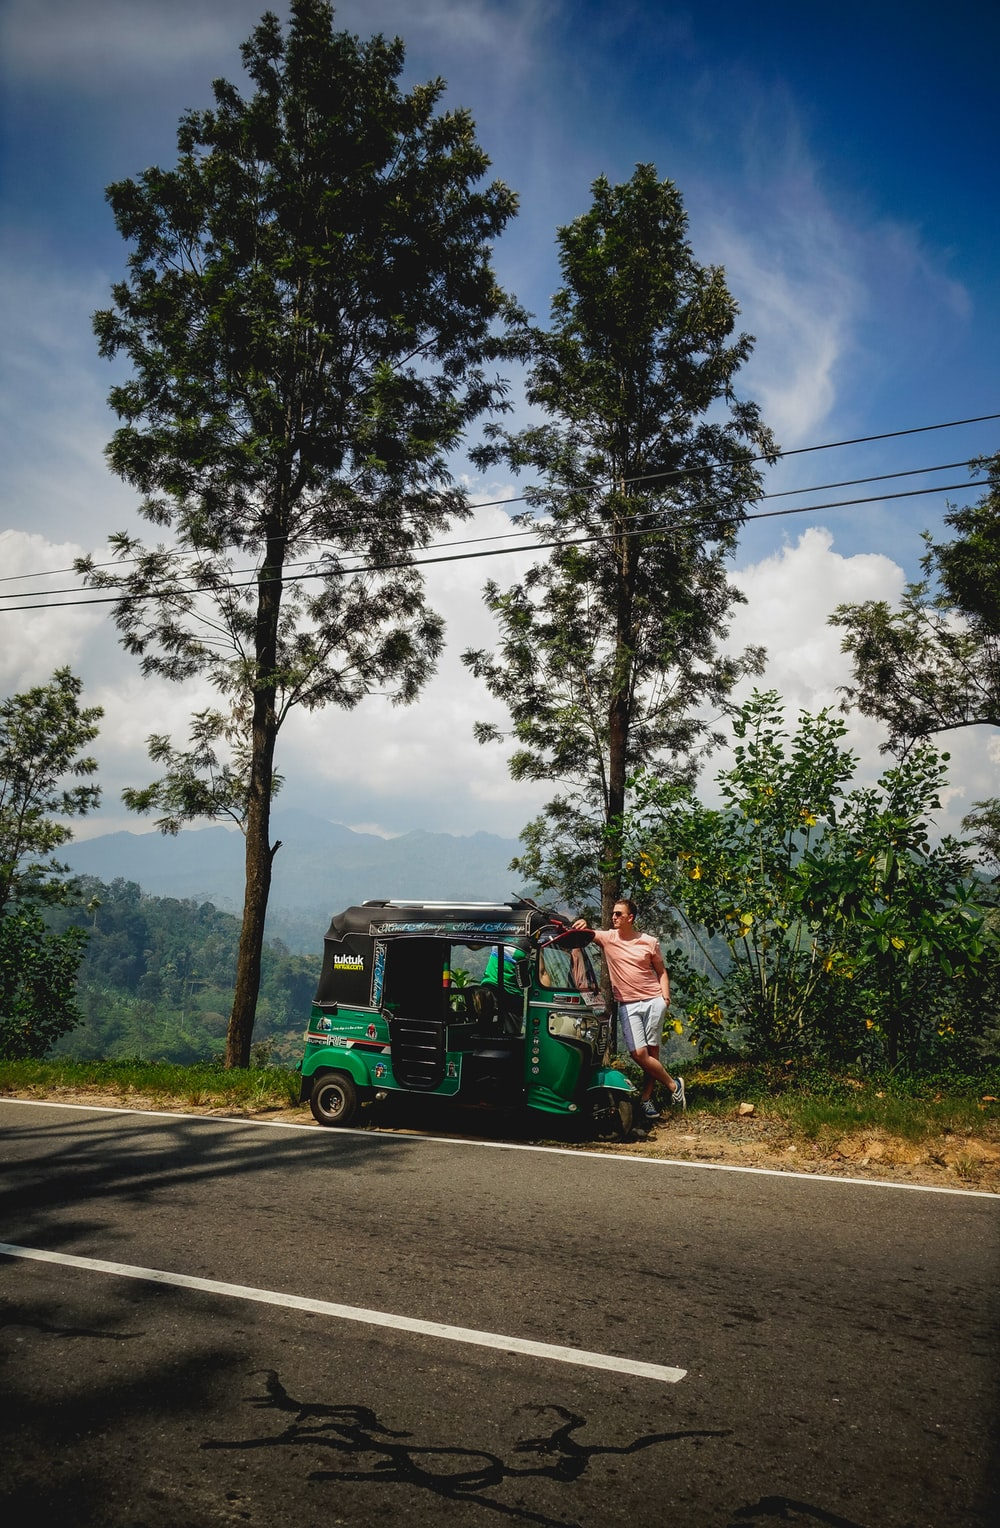 man in green jacket riding green and black auto rickshaw on road during daytime